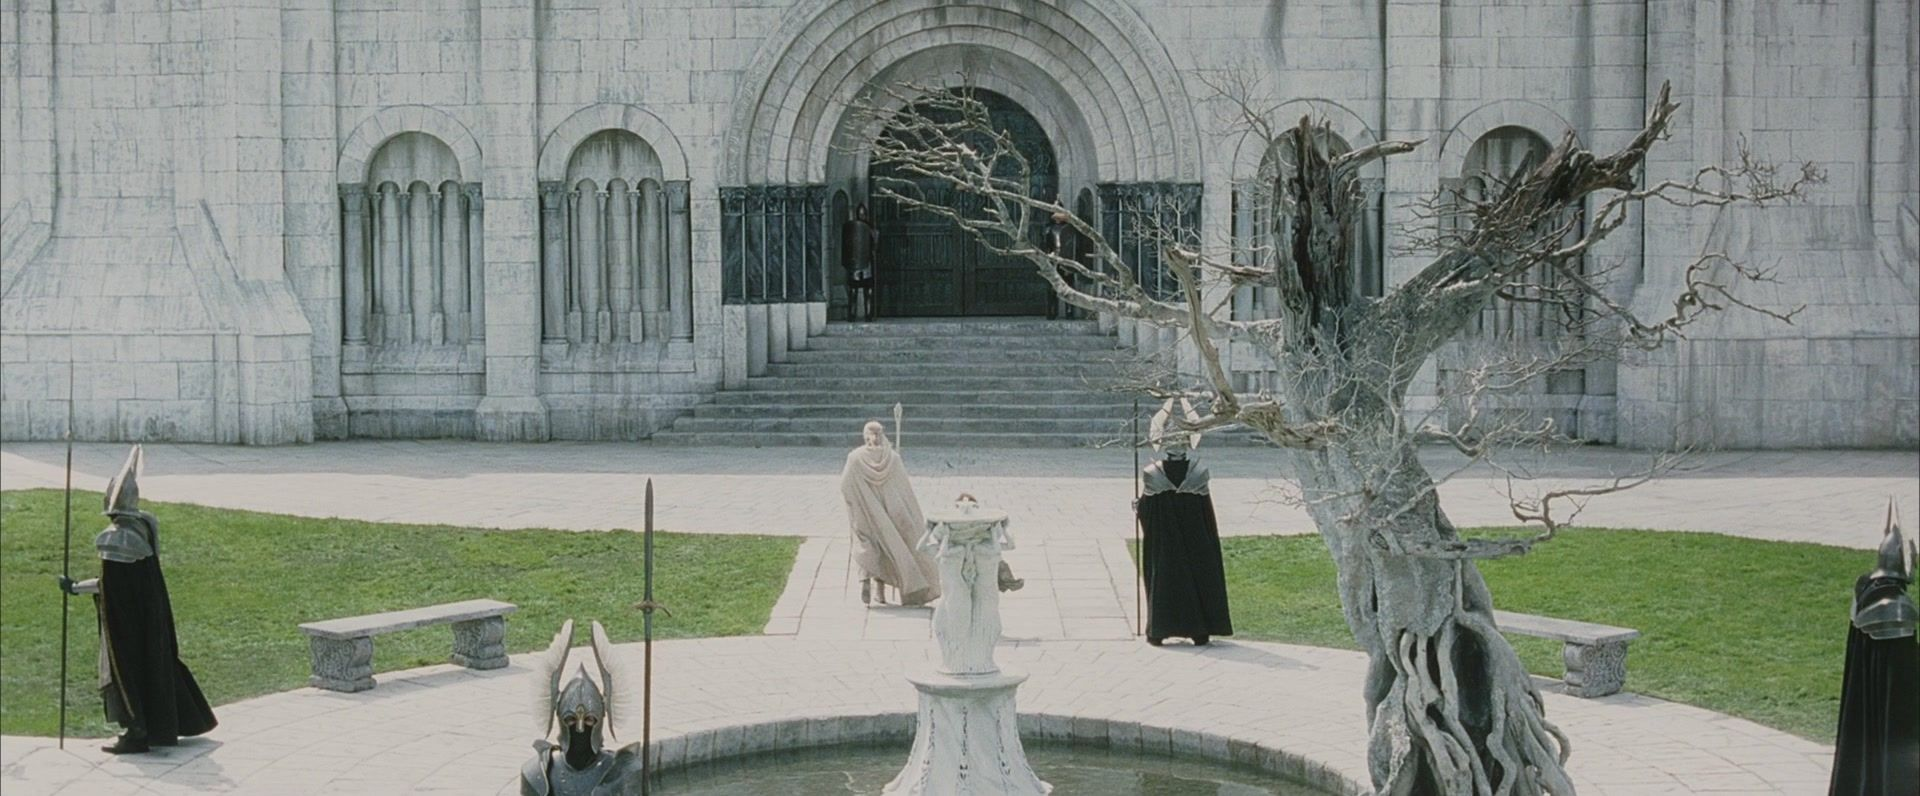 Image result for lord of the rings minas tirith tree